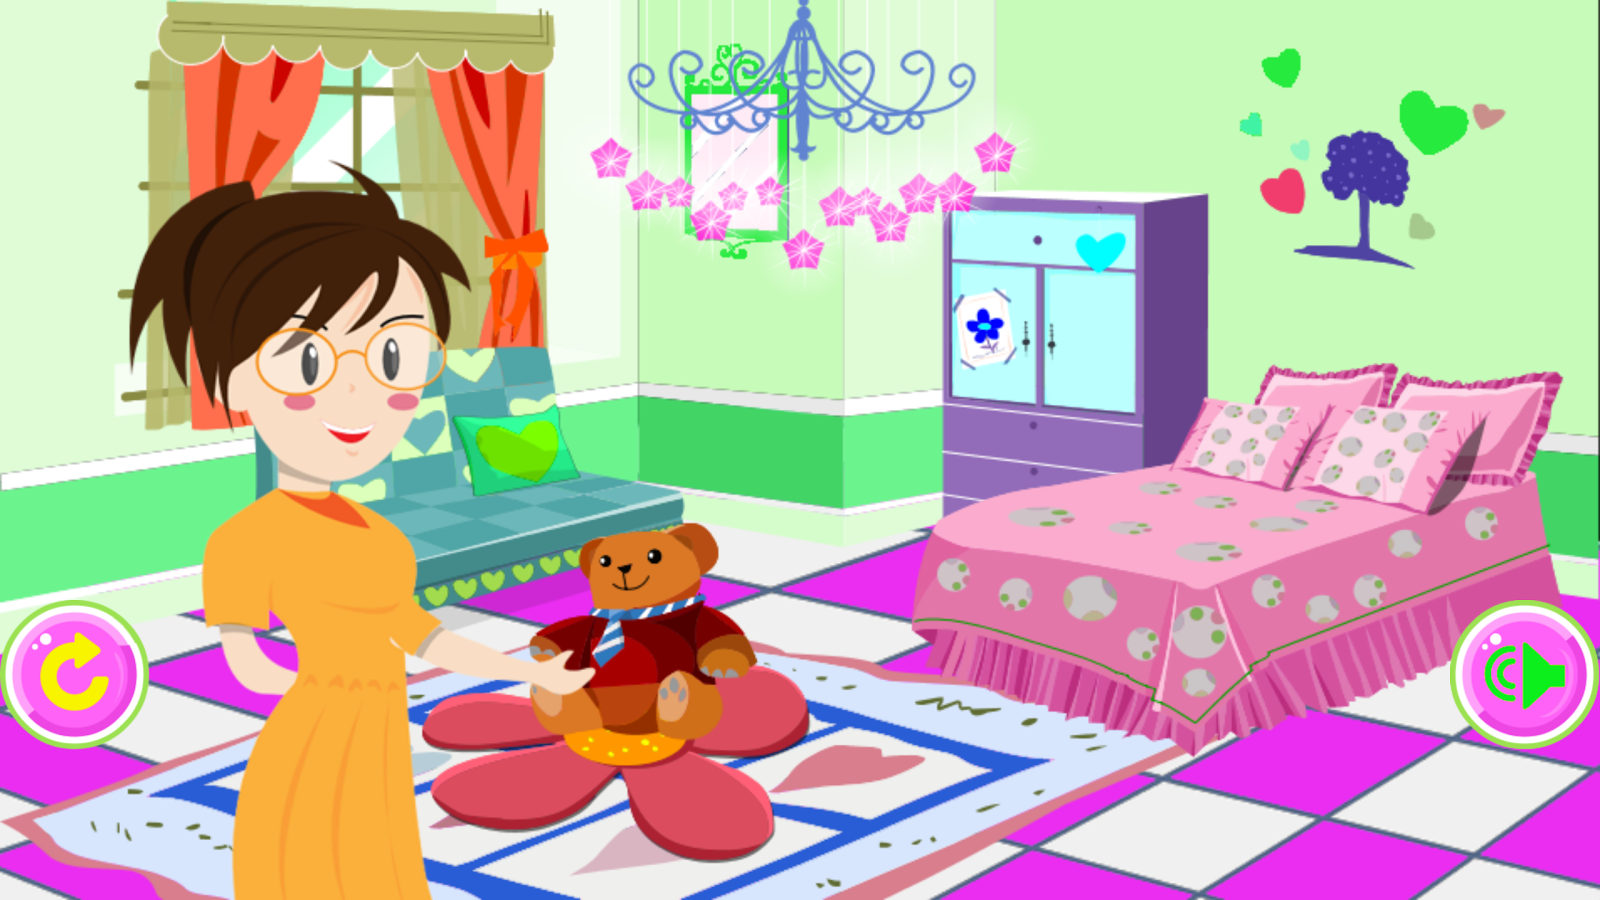 Girly Room Decoration Game Apk  girly games for girls girl